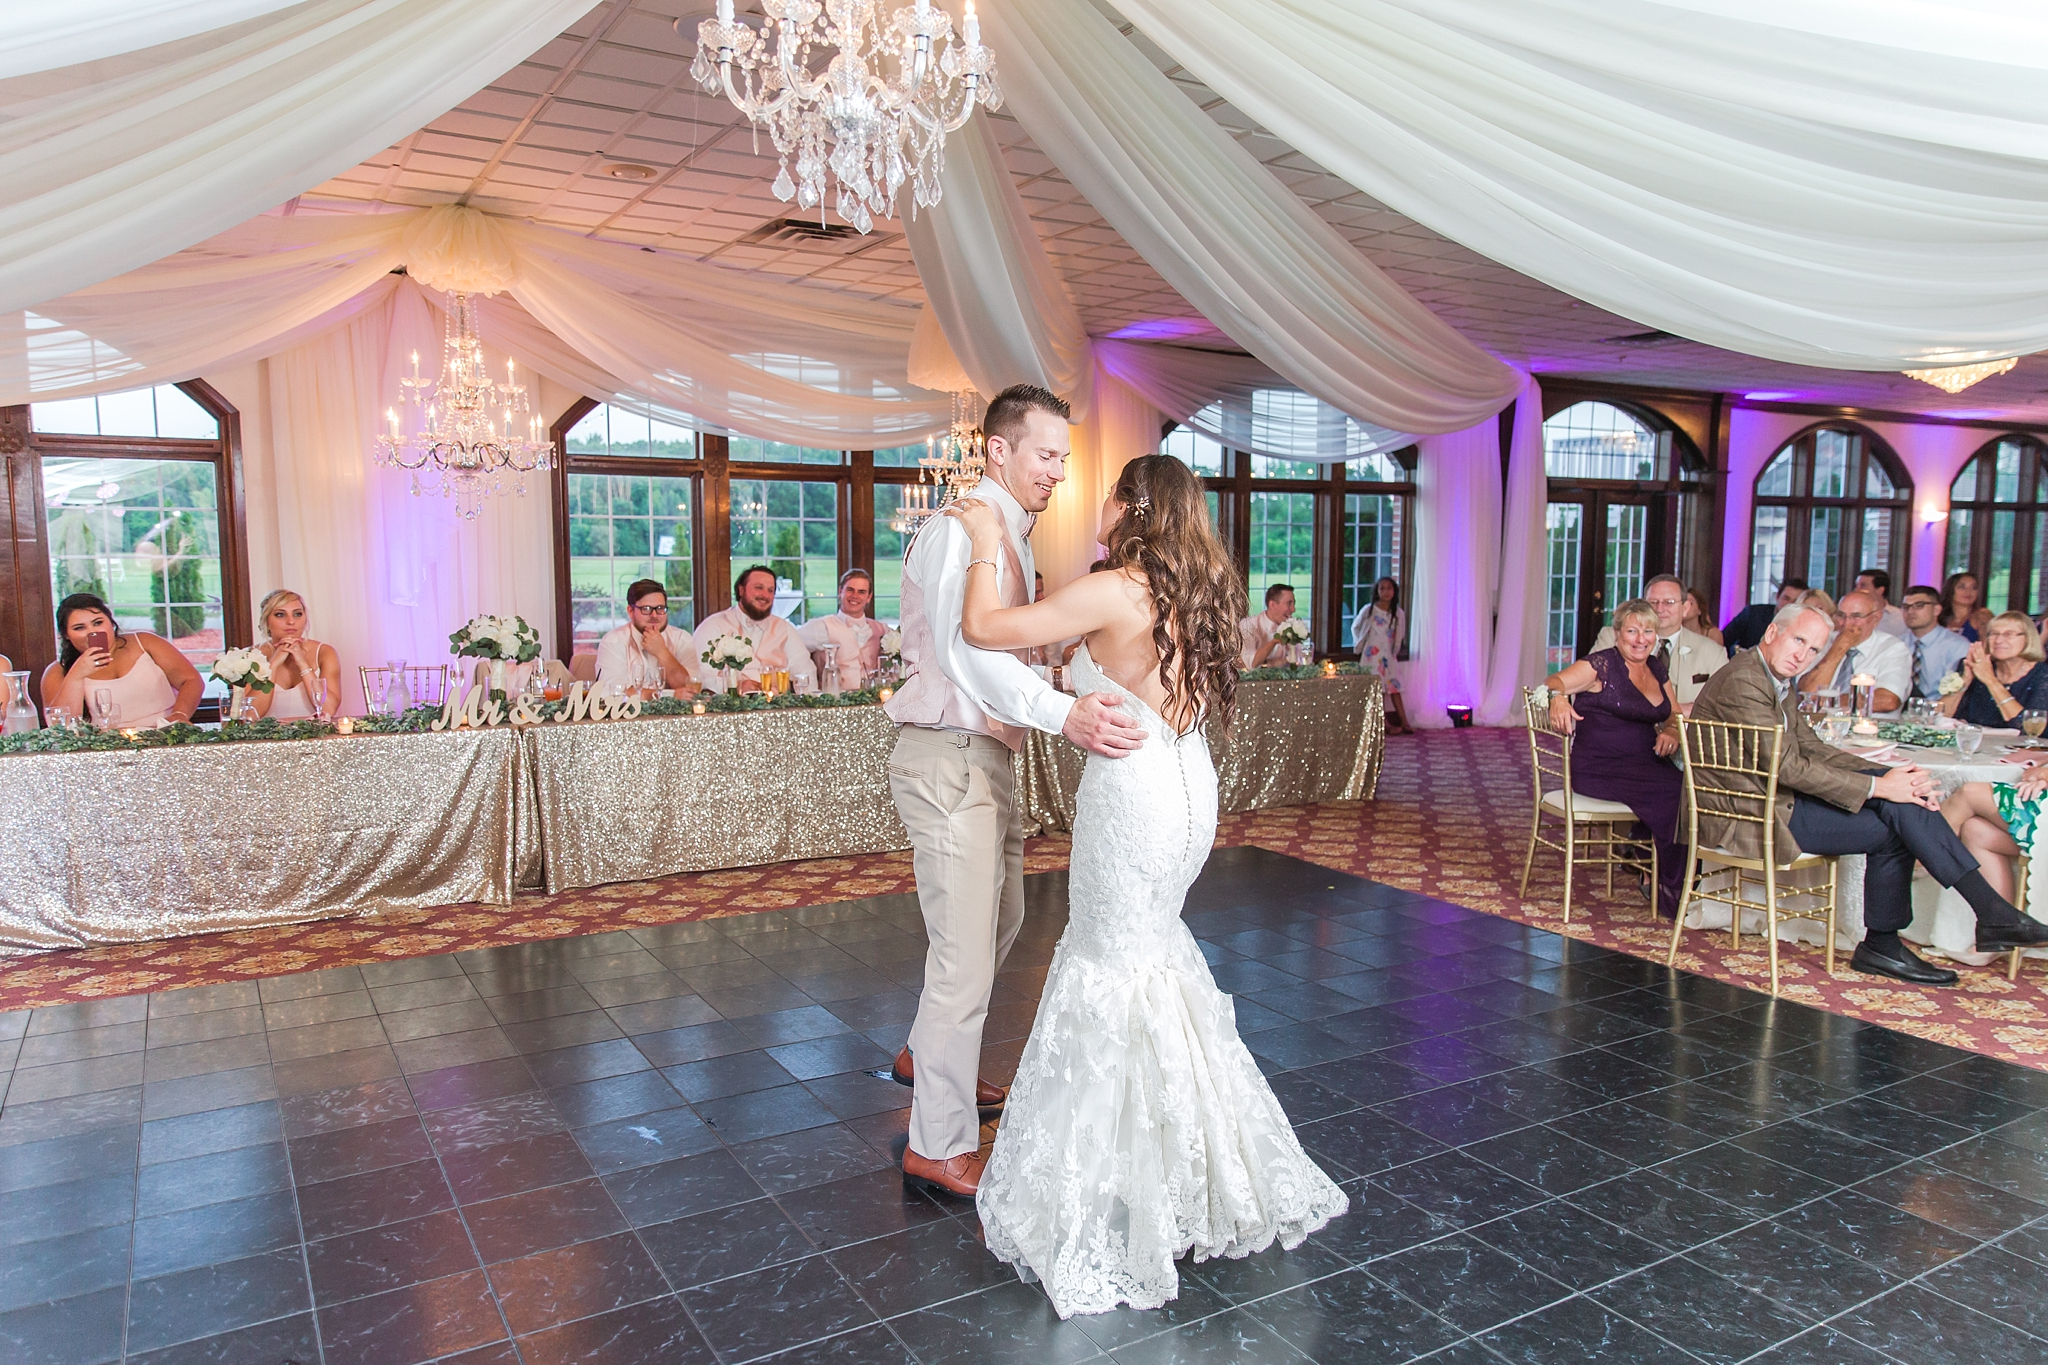 candid-timeless-wedding-photos-at-the-captains-club-in-grand-blanc-michigan-by-courtney-carolyn-photography_0101.jpg